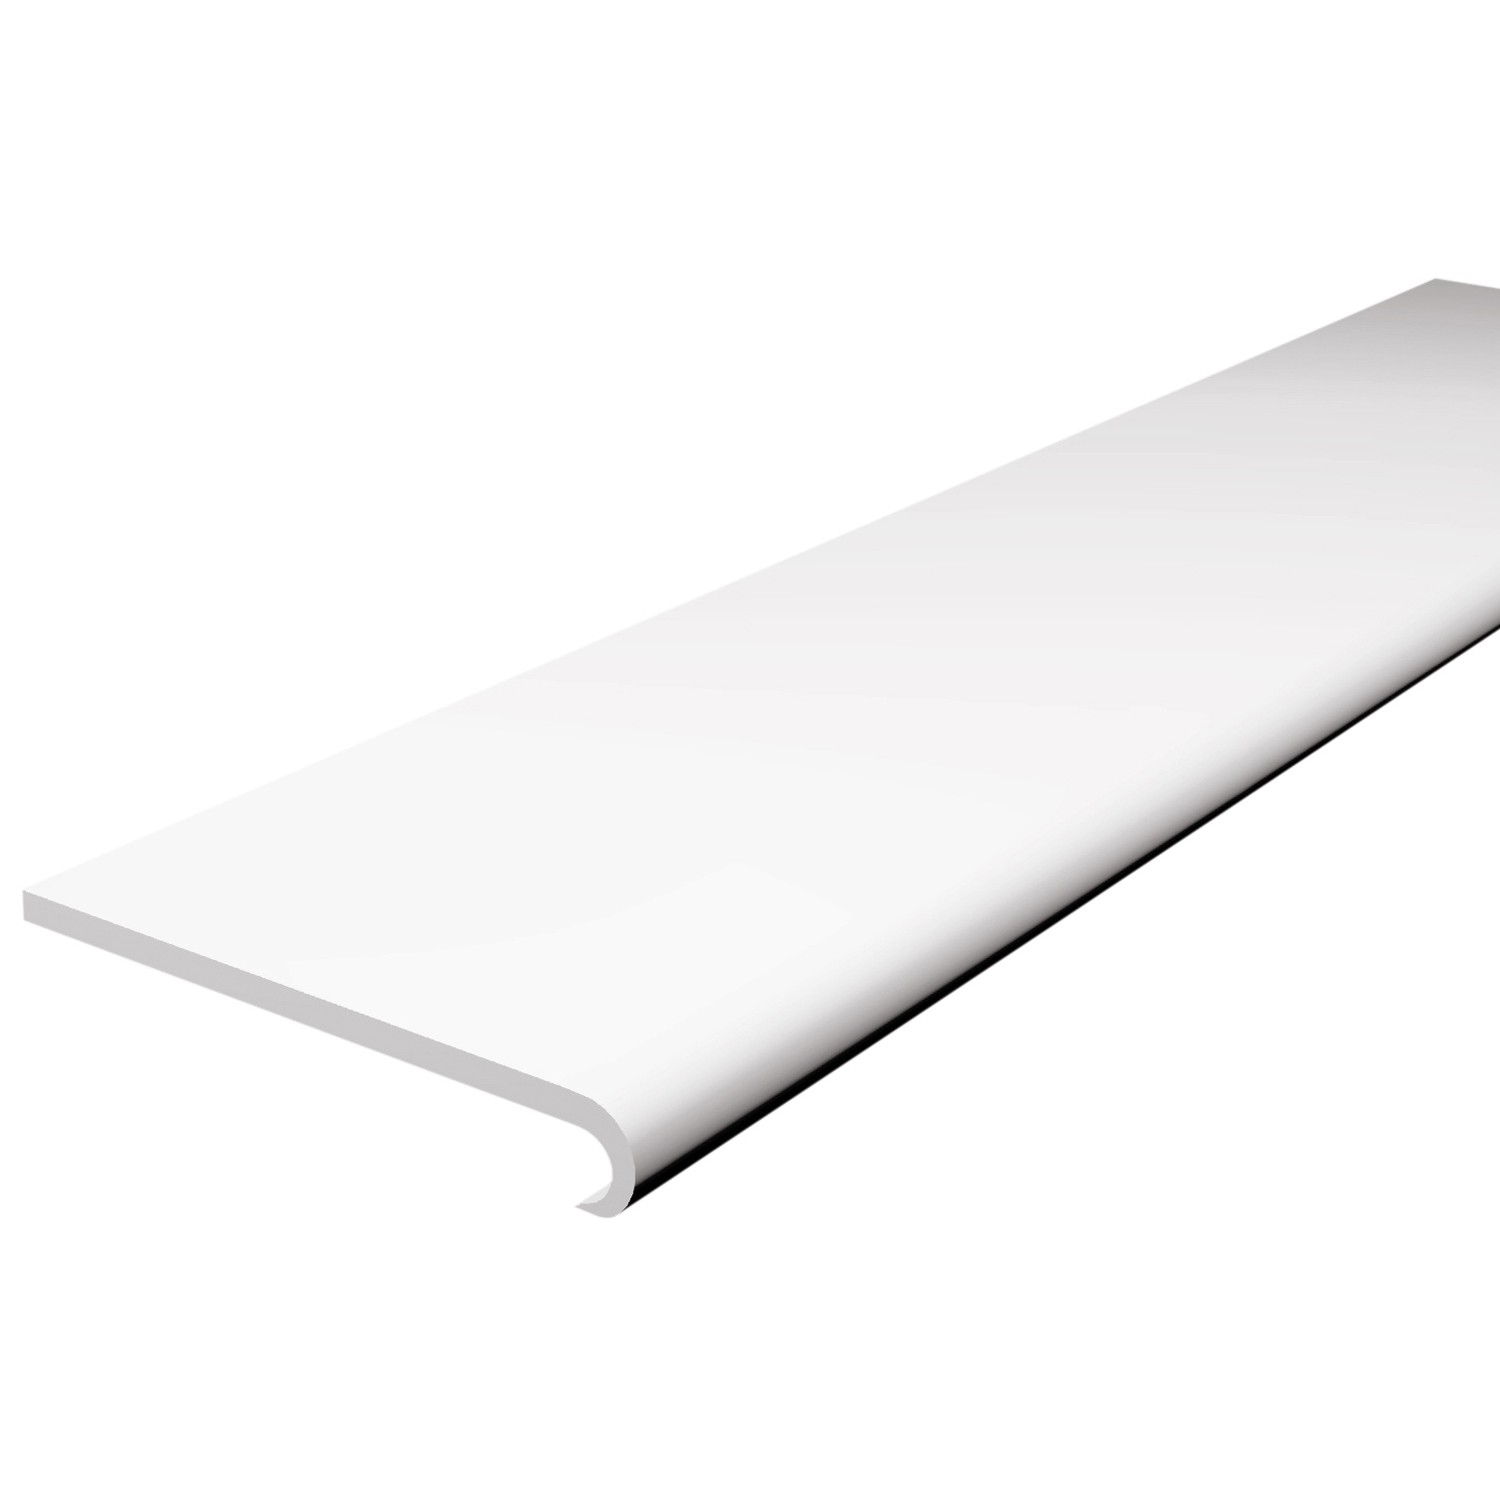 Freefoam Plastic Bullnose Window Board (1.25 metre x 4) - White, 250mm